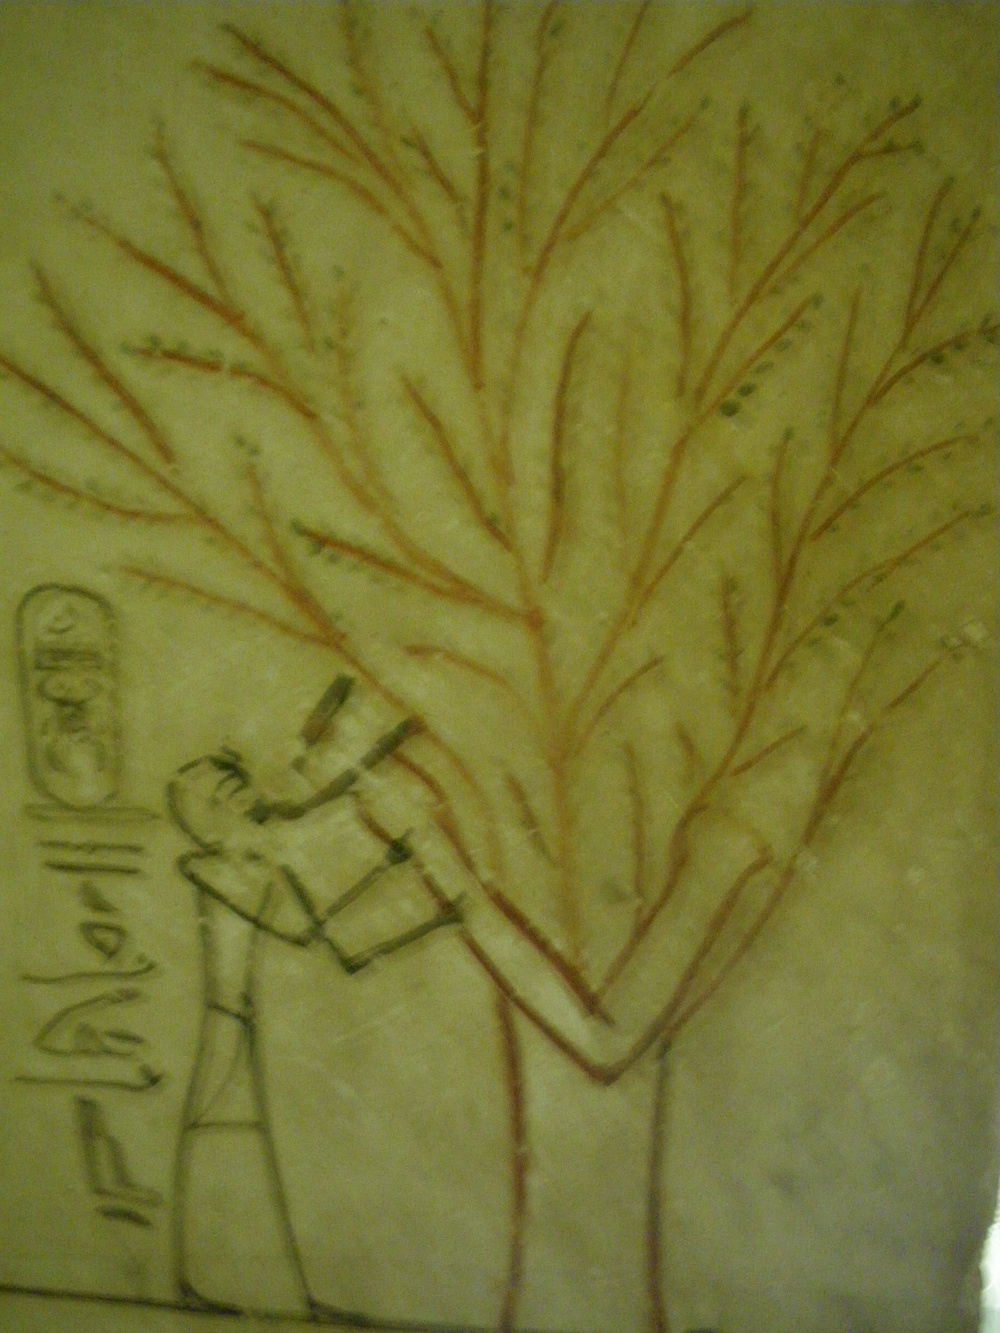 Figure 4.3. A tree of nourishment, from the tomb of Tuthmosis III, Valley of the Kings, Luxor, Egypt.